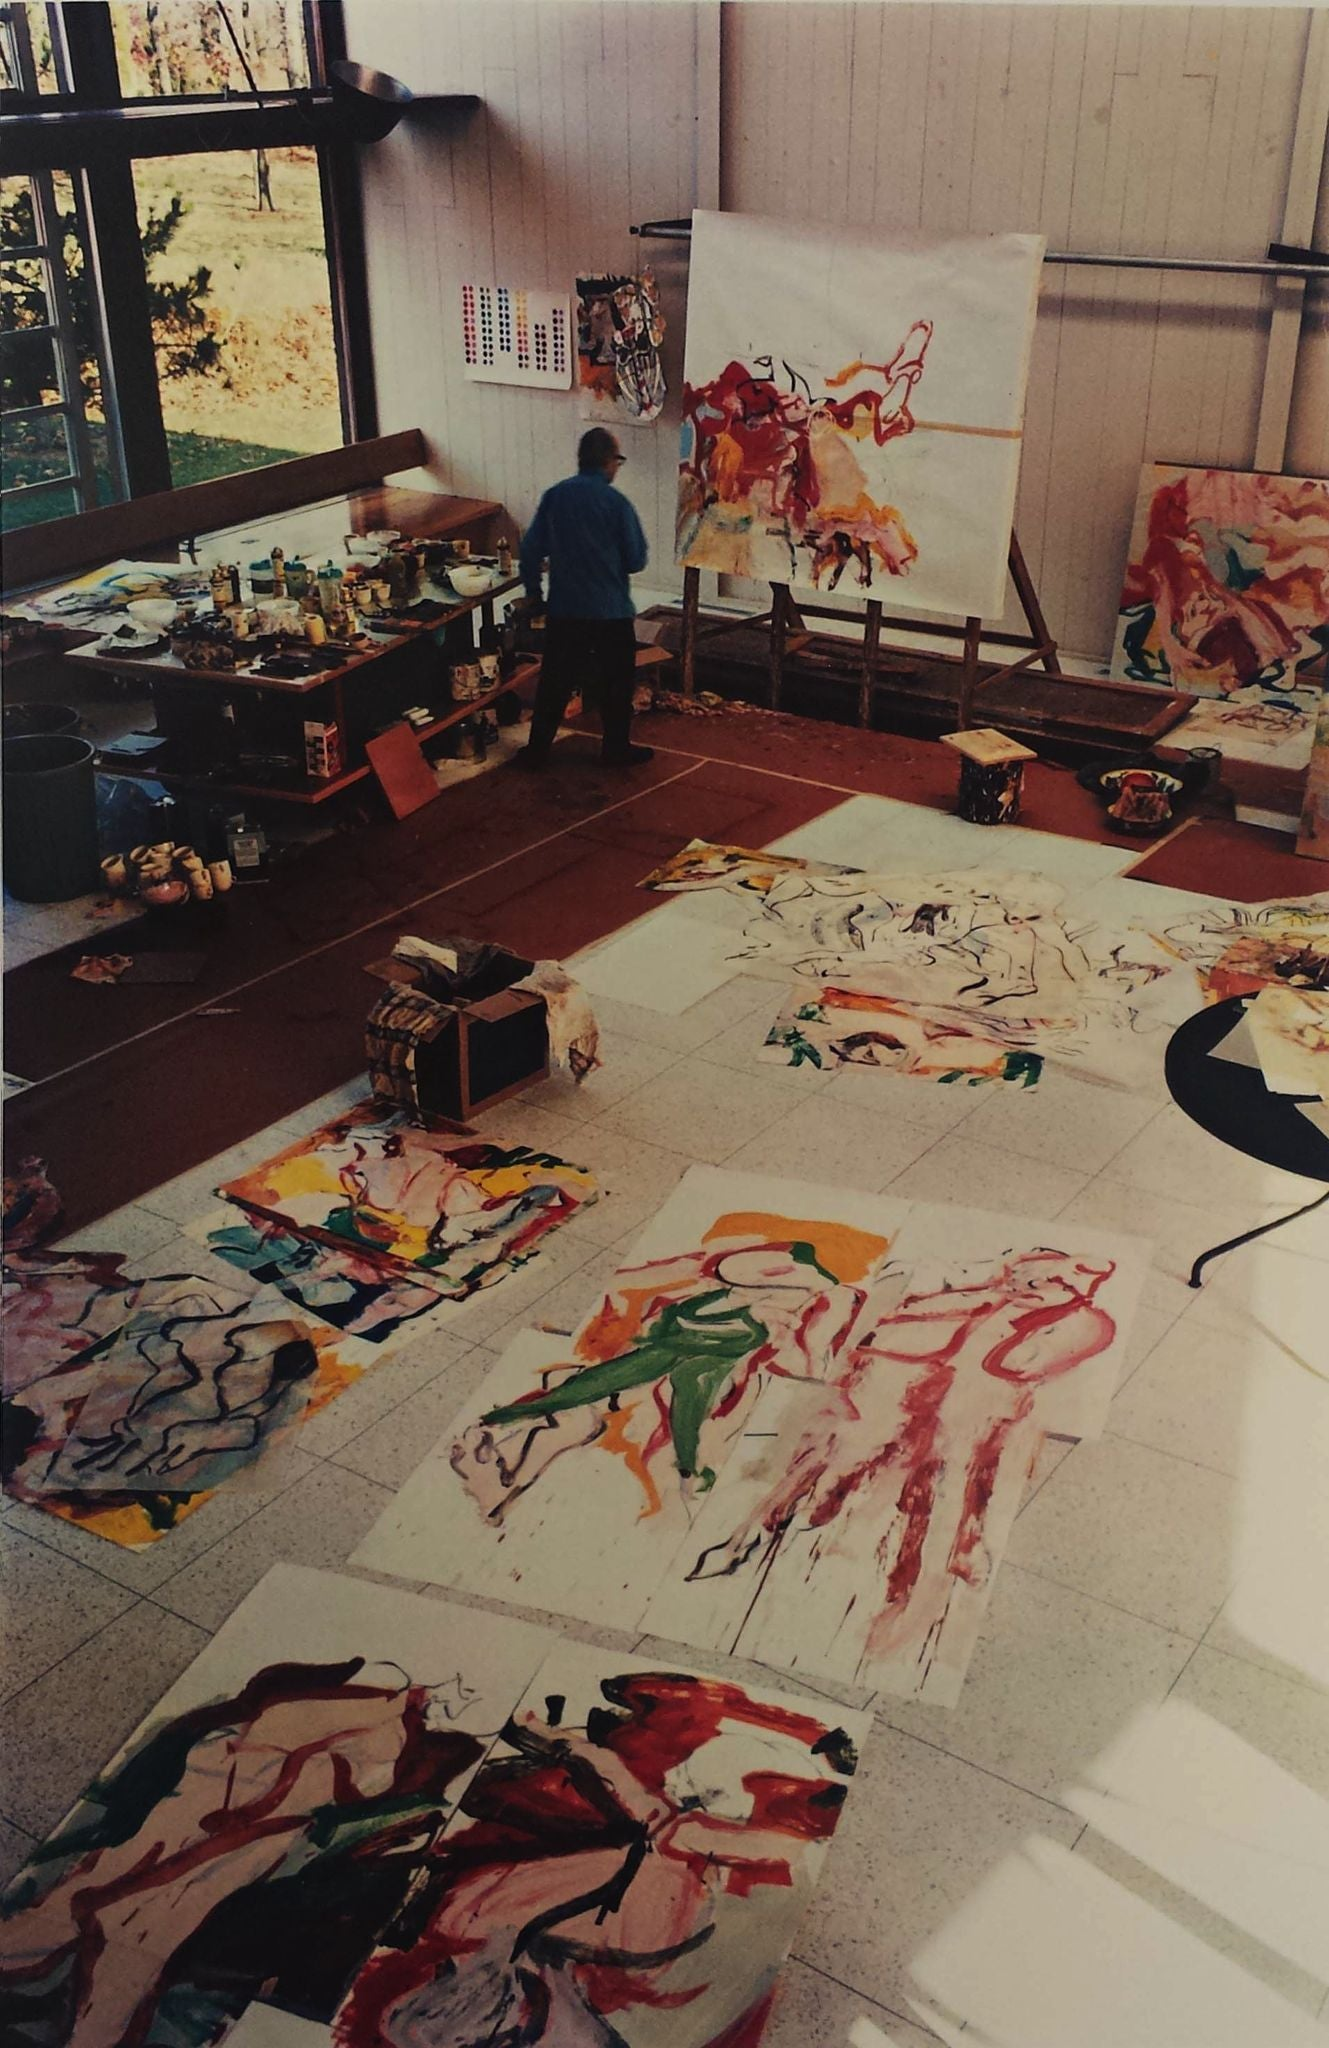 Willem de Kooning (1904-1997) in his Studio, The Springs, New York, November 1968 Default Title